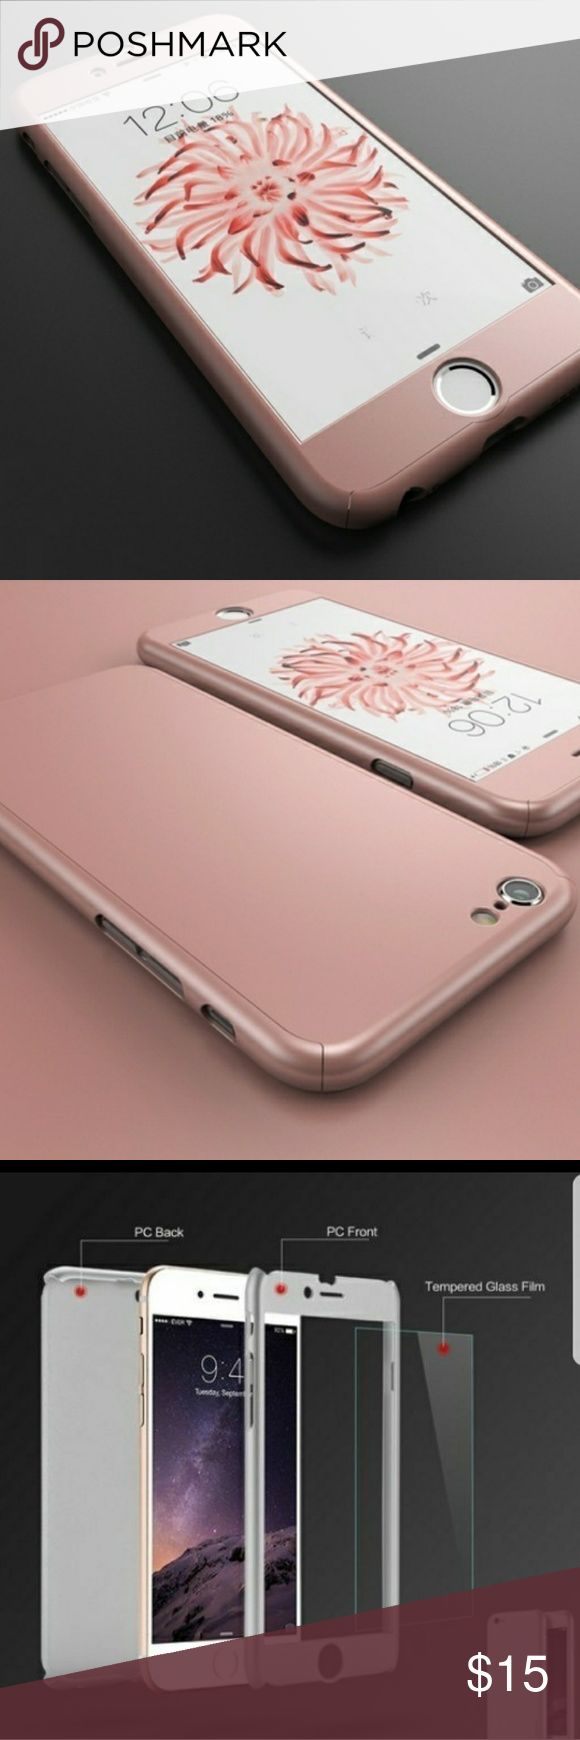 Sleek Rose Gold with Tempered Glass (IPhone 7/7+) Full Protection with a 360 degree case including Tempered Glass  For IPHONE 7/IPHONE 7 PLUS  Please be sure to specify for which iPhone you're purchasing upon sale of item. Accessories Phone Cases